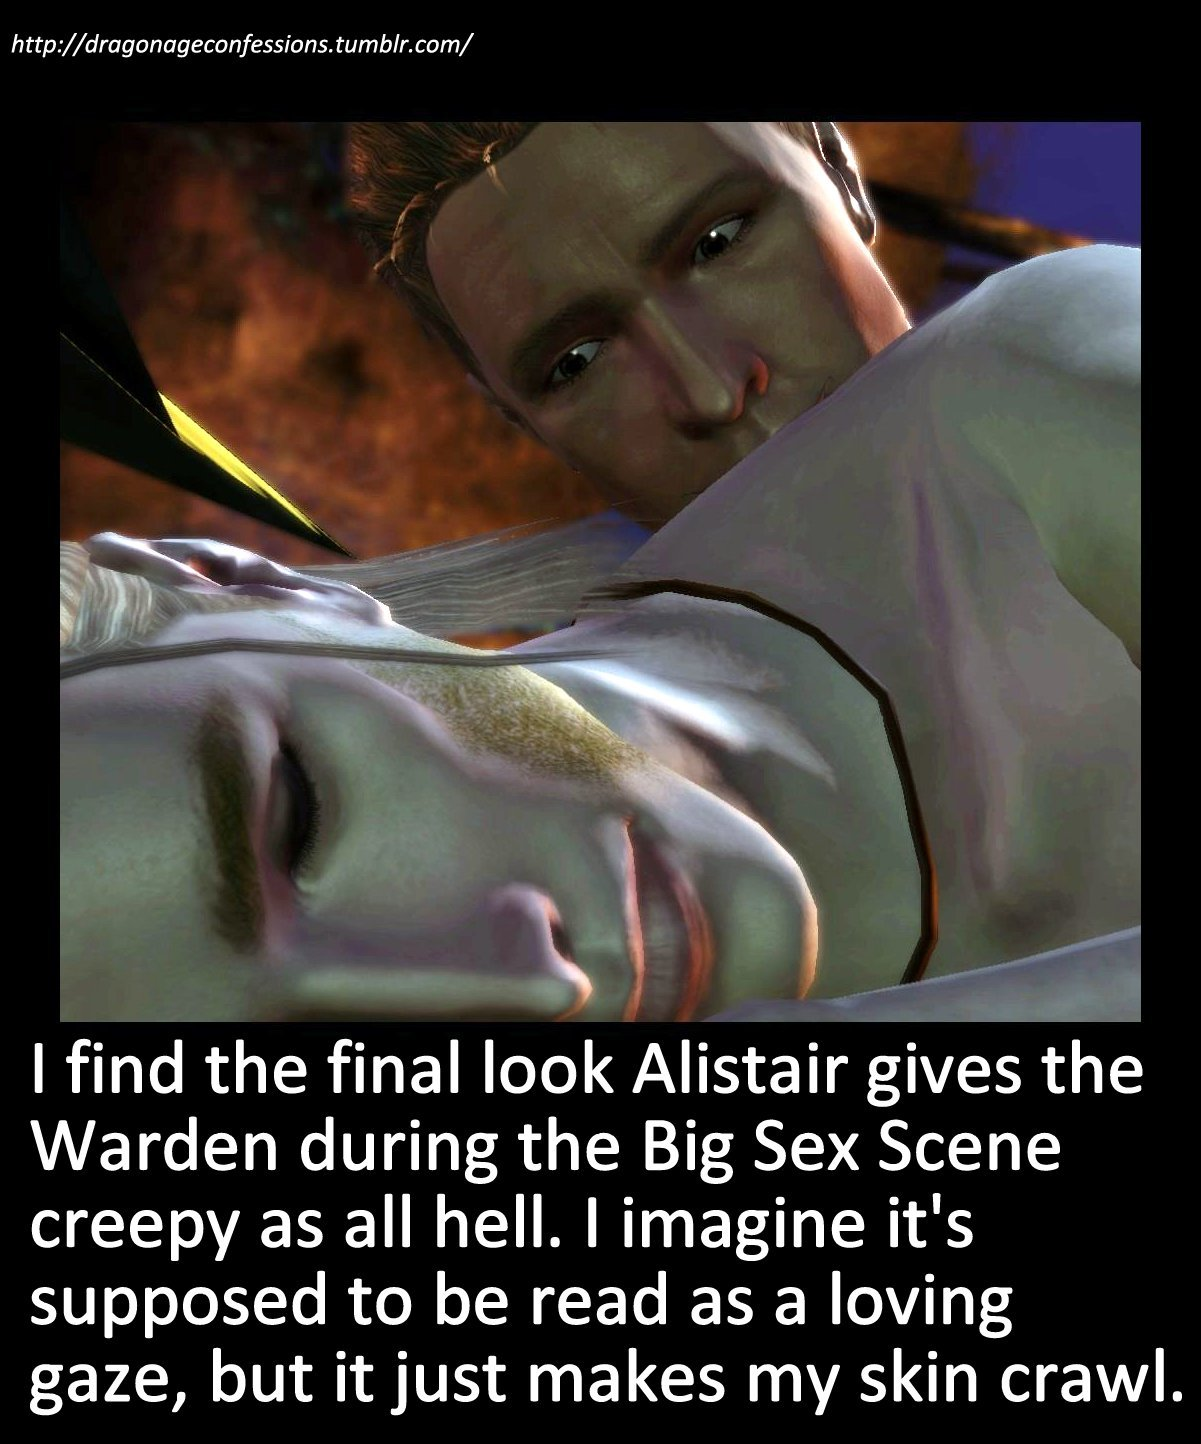 dragonageconfessions:  Confession: I find the final look Alistair gives the Warden during the Big Sex Scene creepy as all hell. I imagine it's supposed to be read as a loving gaze, but it just makes my skin crawl.  Yeah well the shit his fandom does to him is way creepier, confessor.